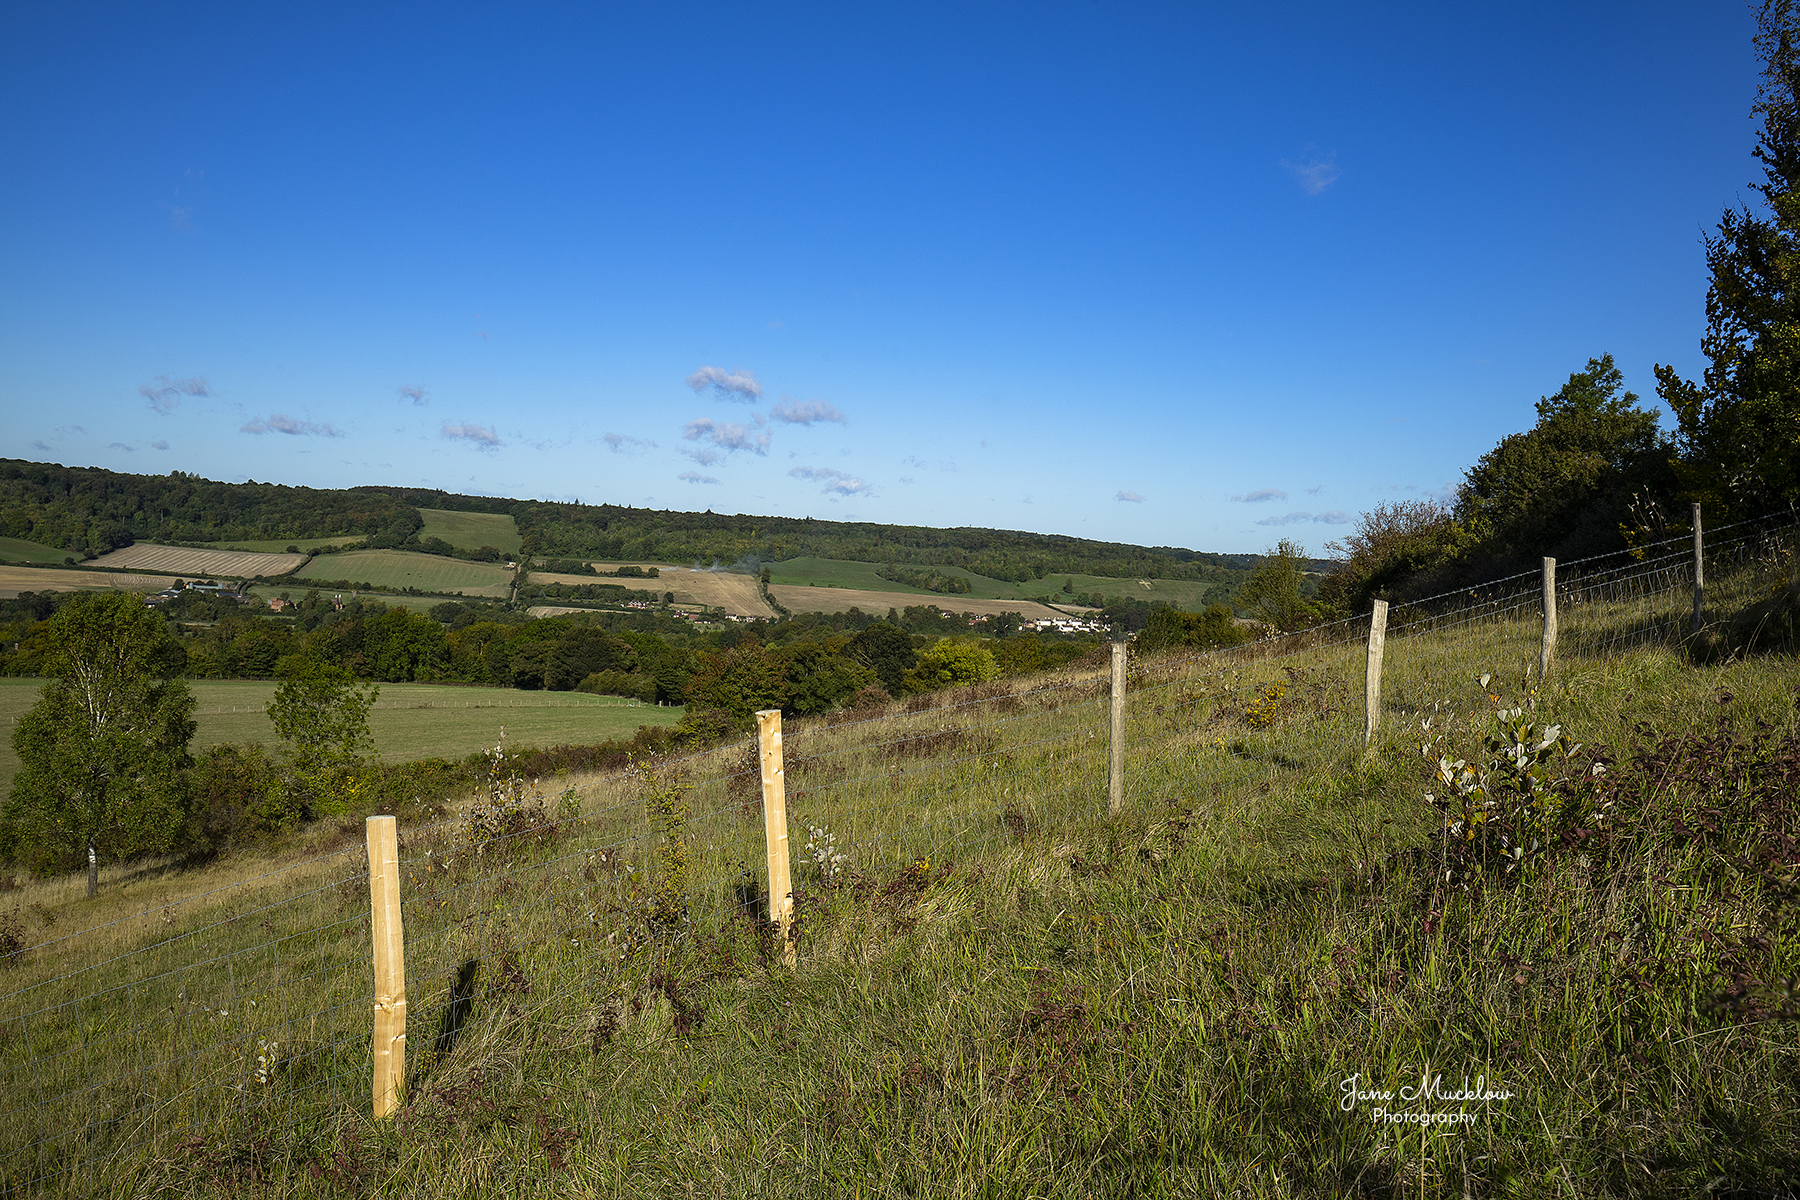 Photo of the view to Shoreham Cross for Otford Mount, by Jane Mucklow